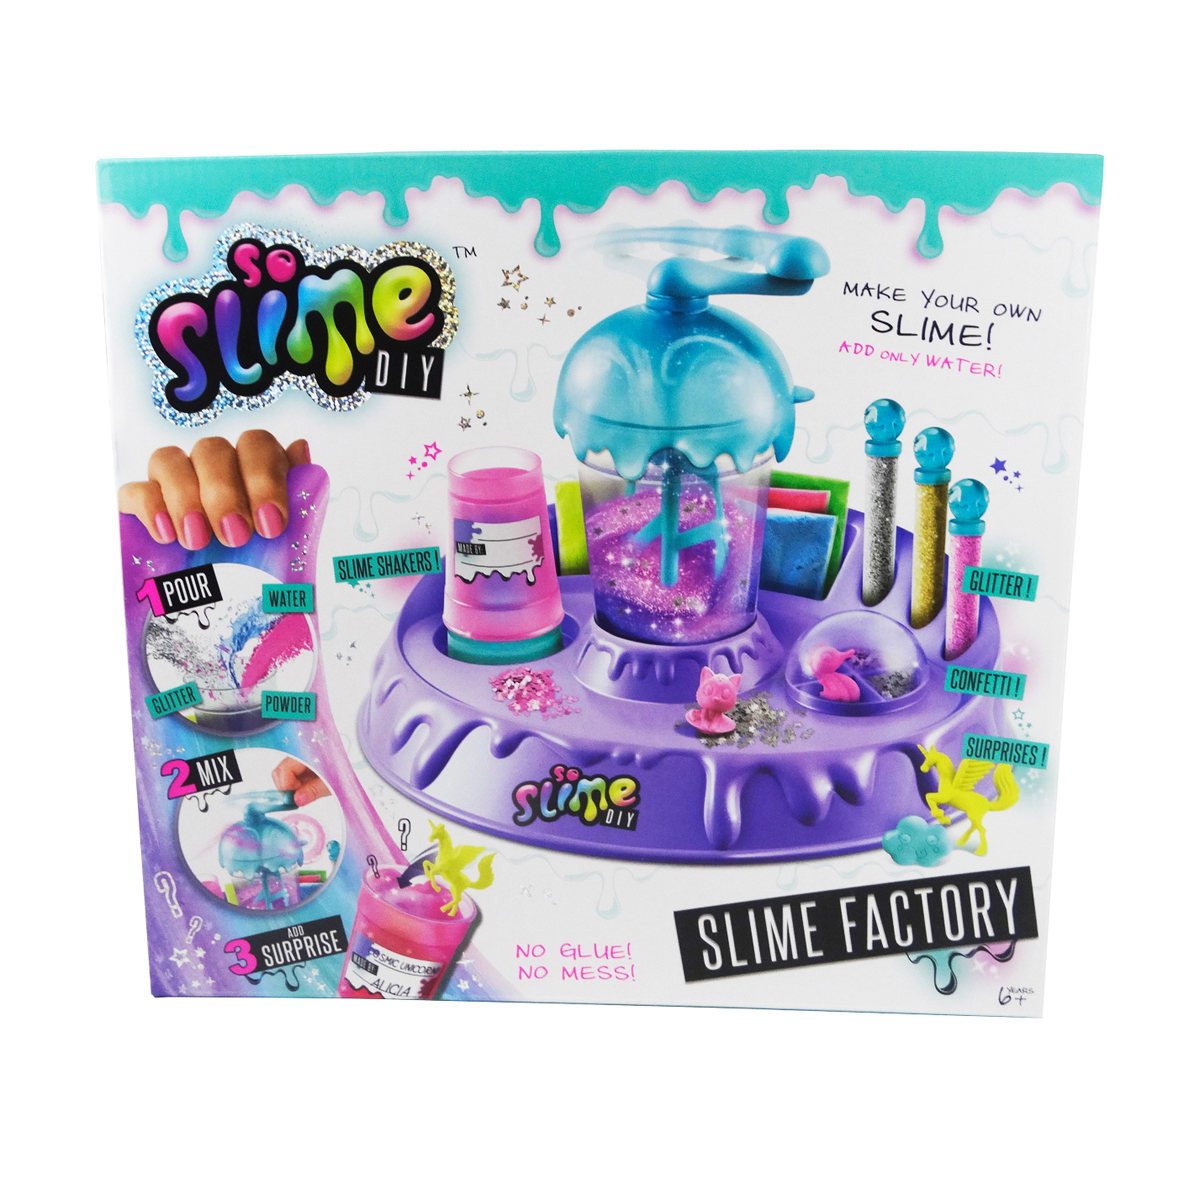 Best ideas about DIY Slime Kit . Save or Pin So Slime DIY Slime Factory Kit Now.